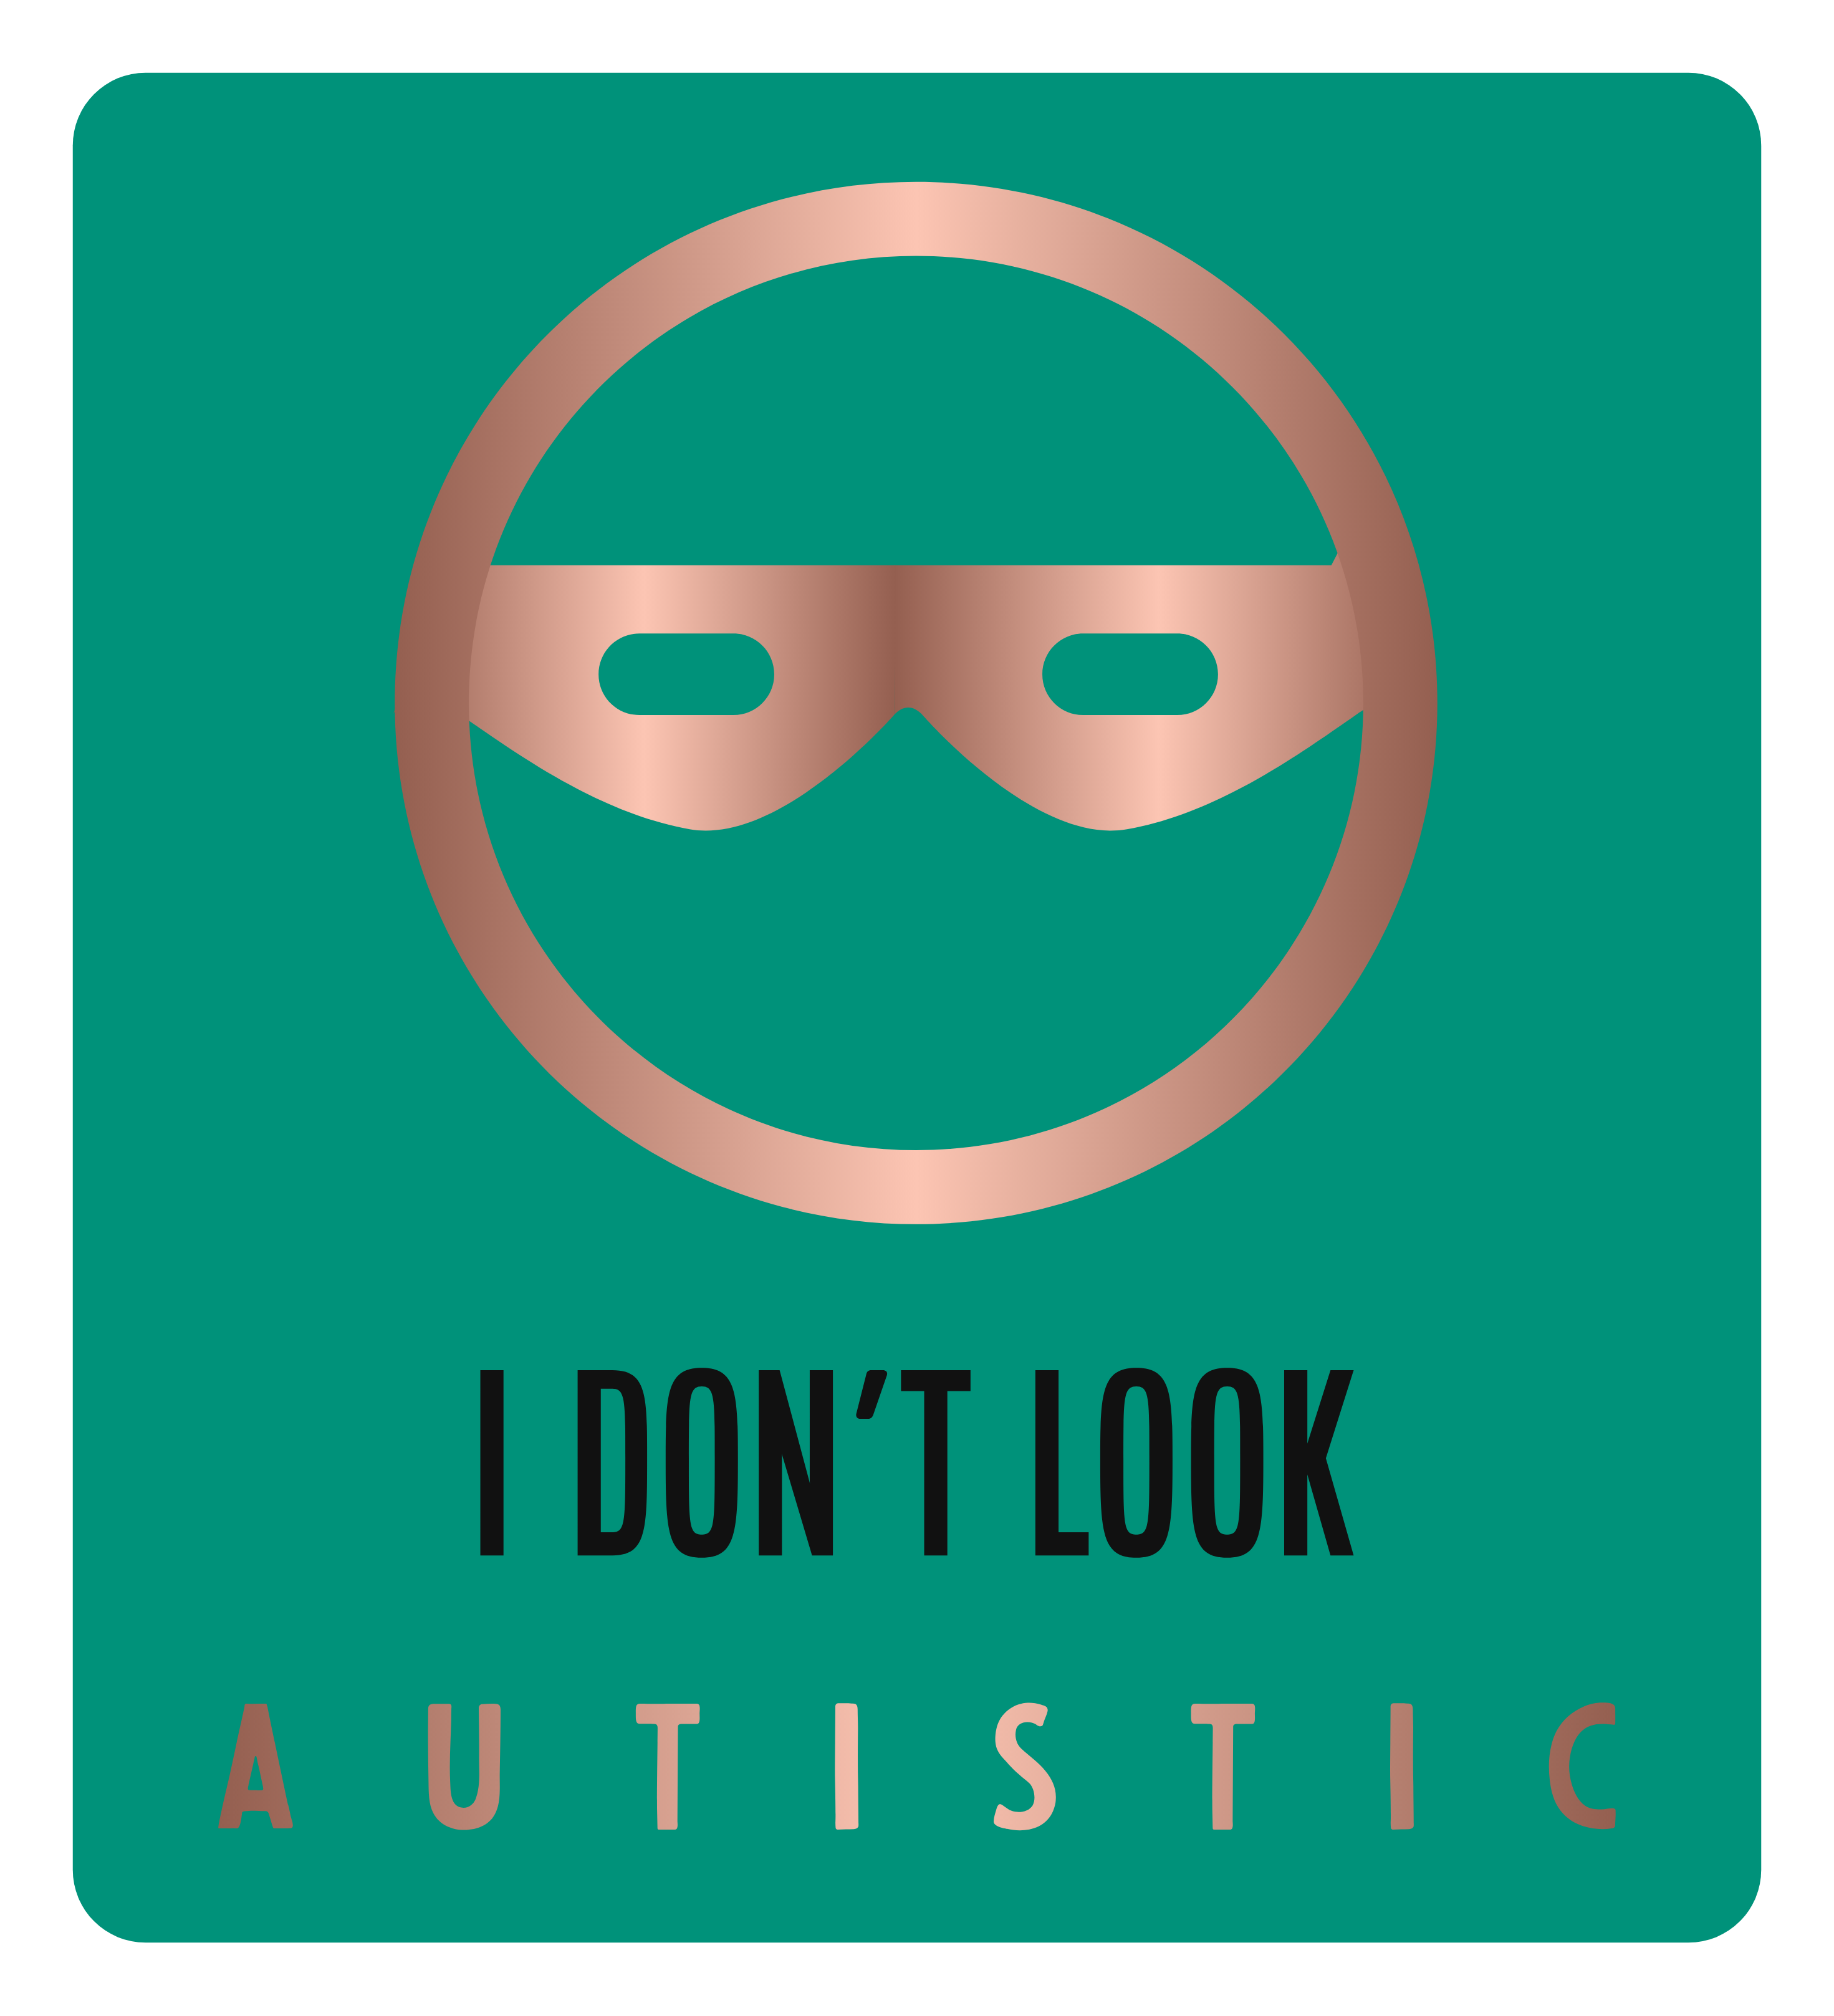 I Don't Look Autistic